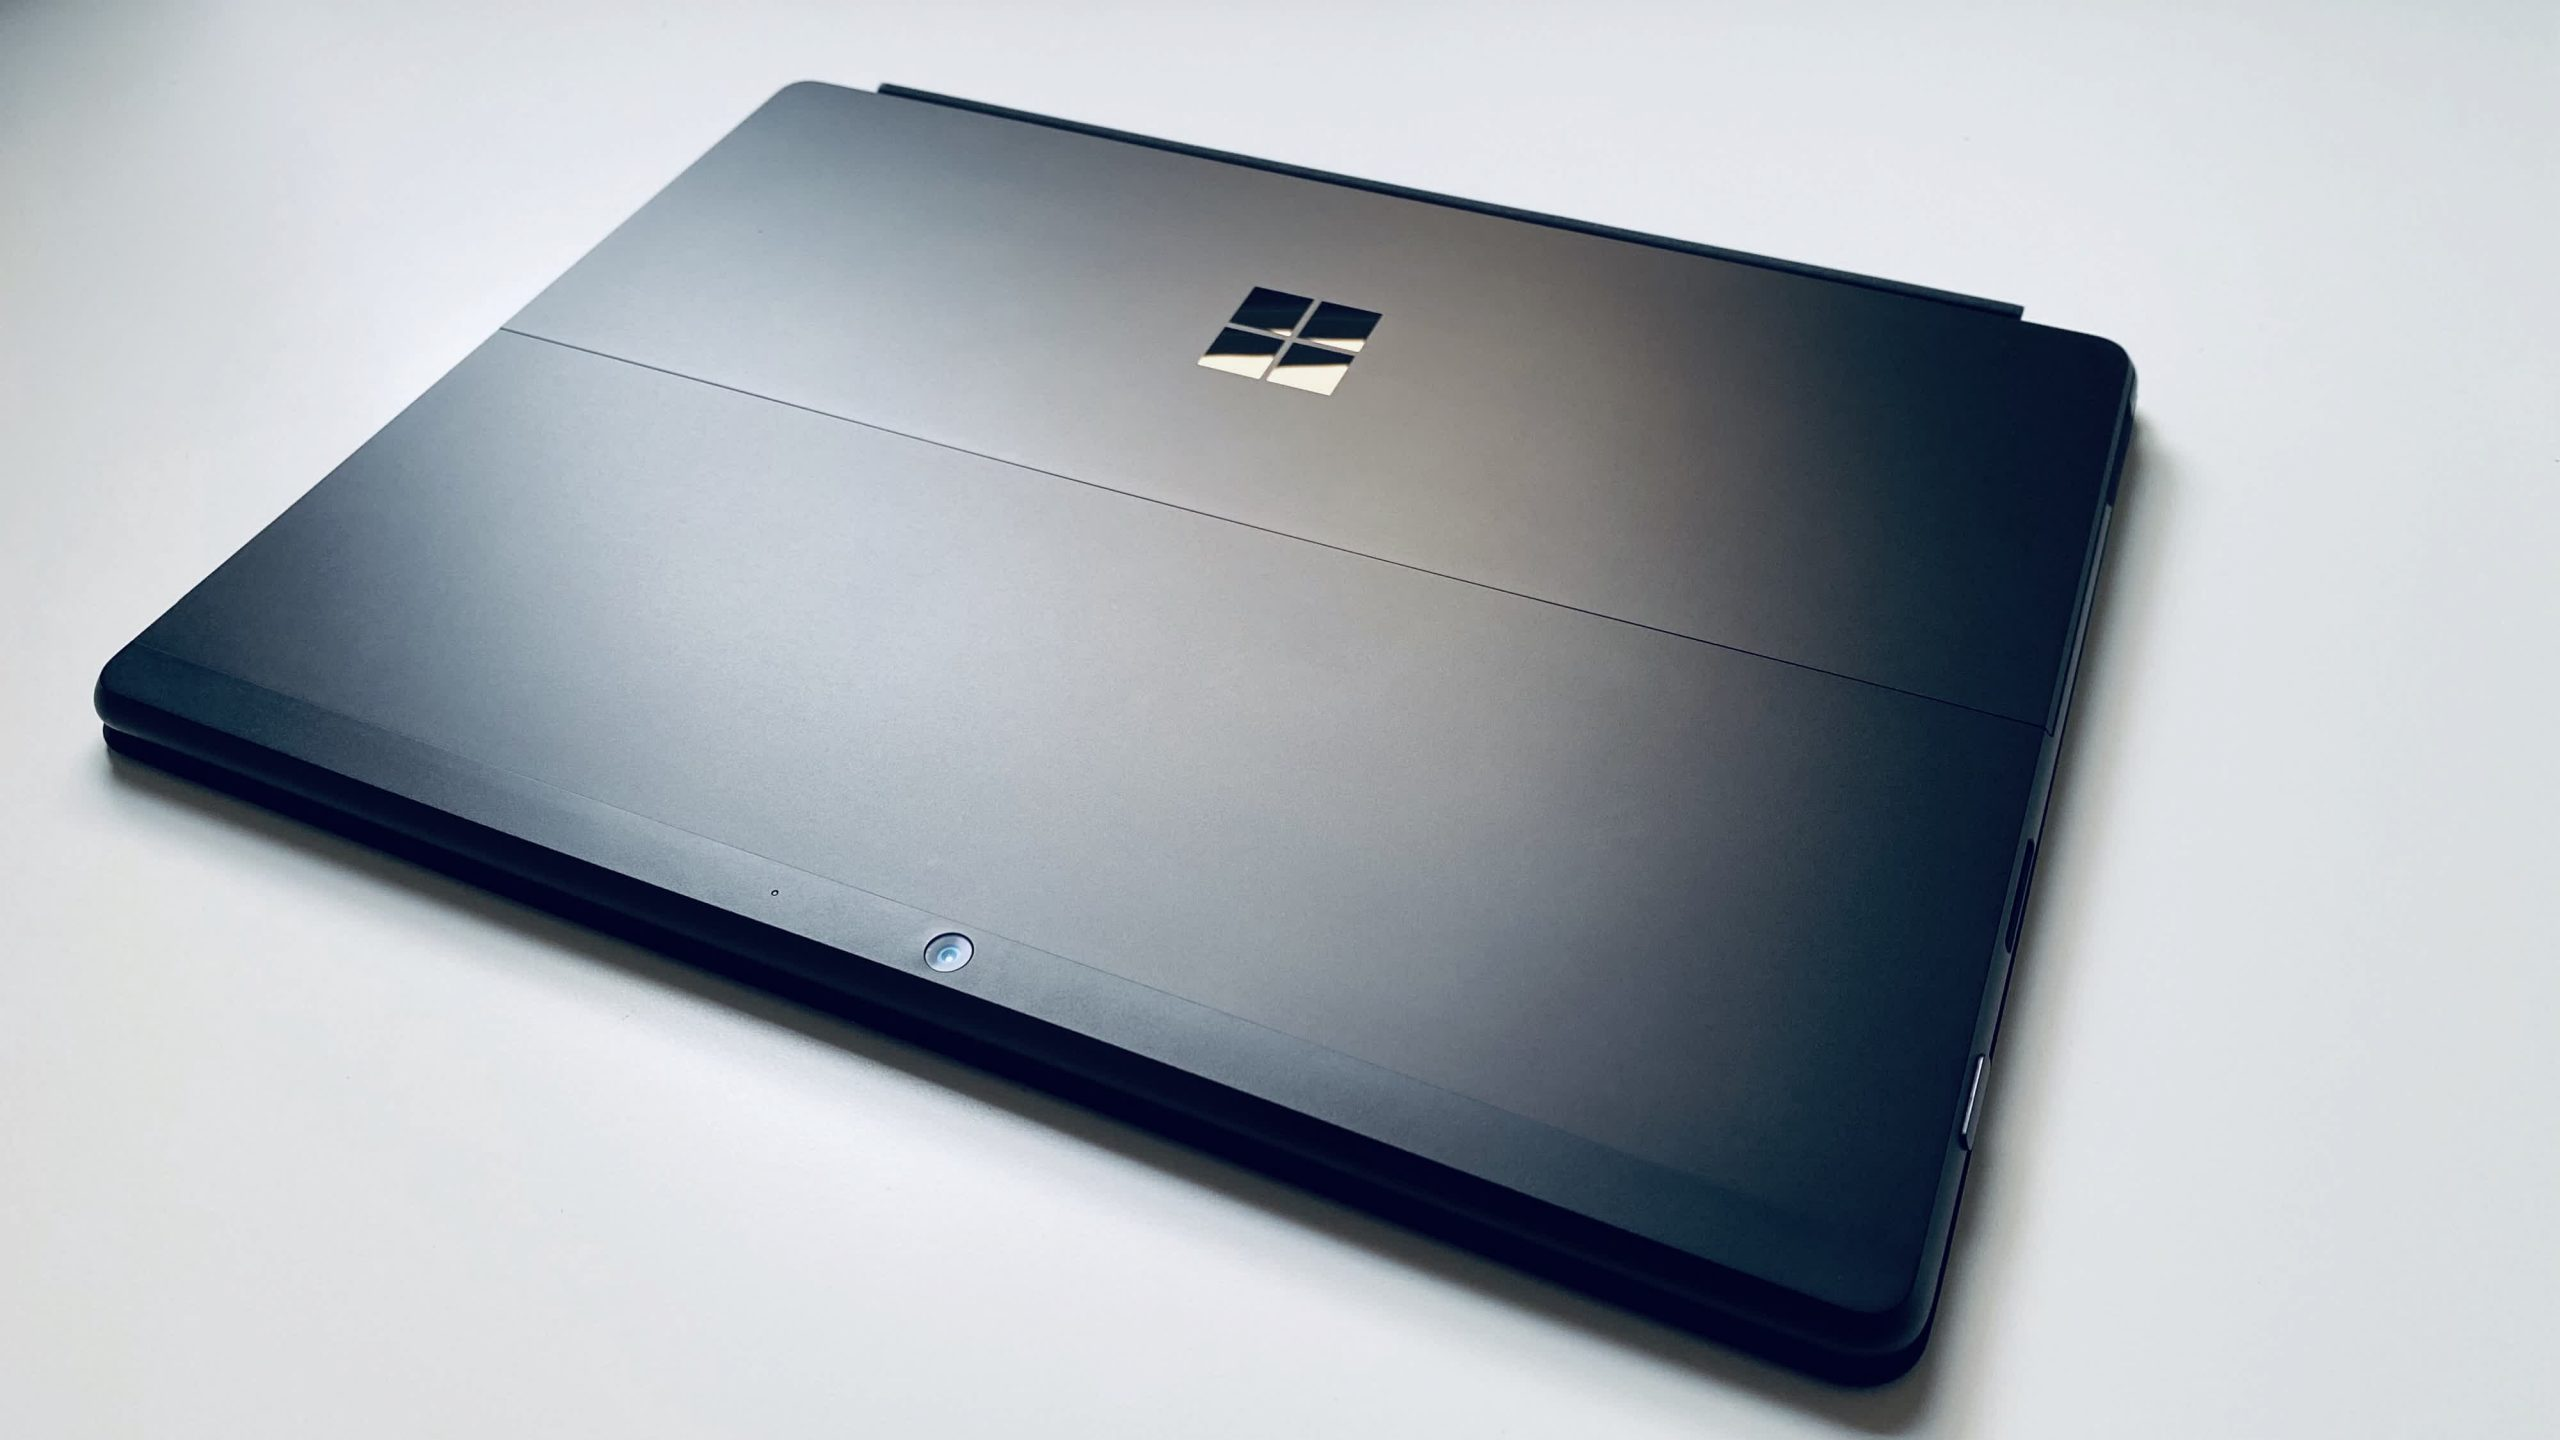 Microsoft will show what's next for Surface hardware on September 22